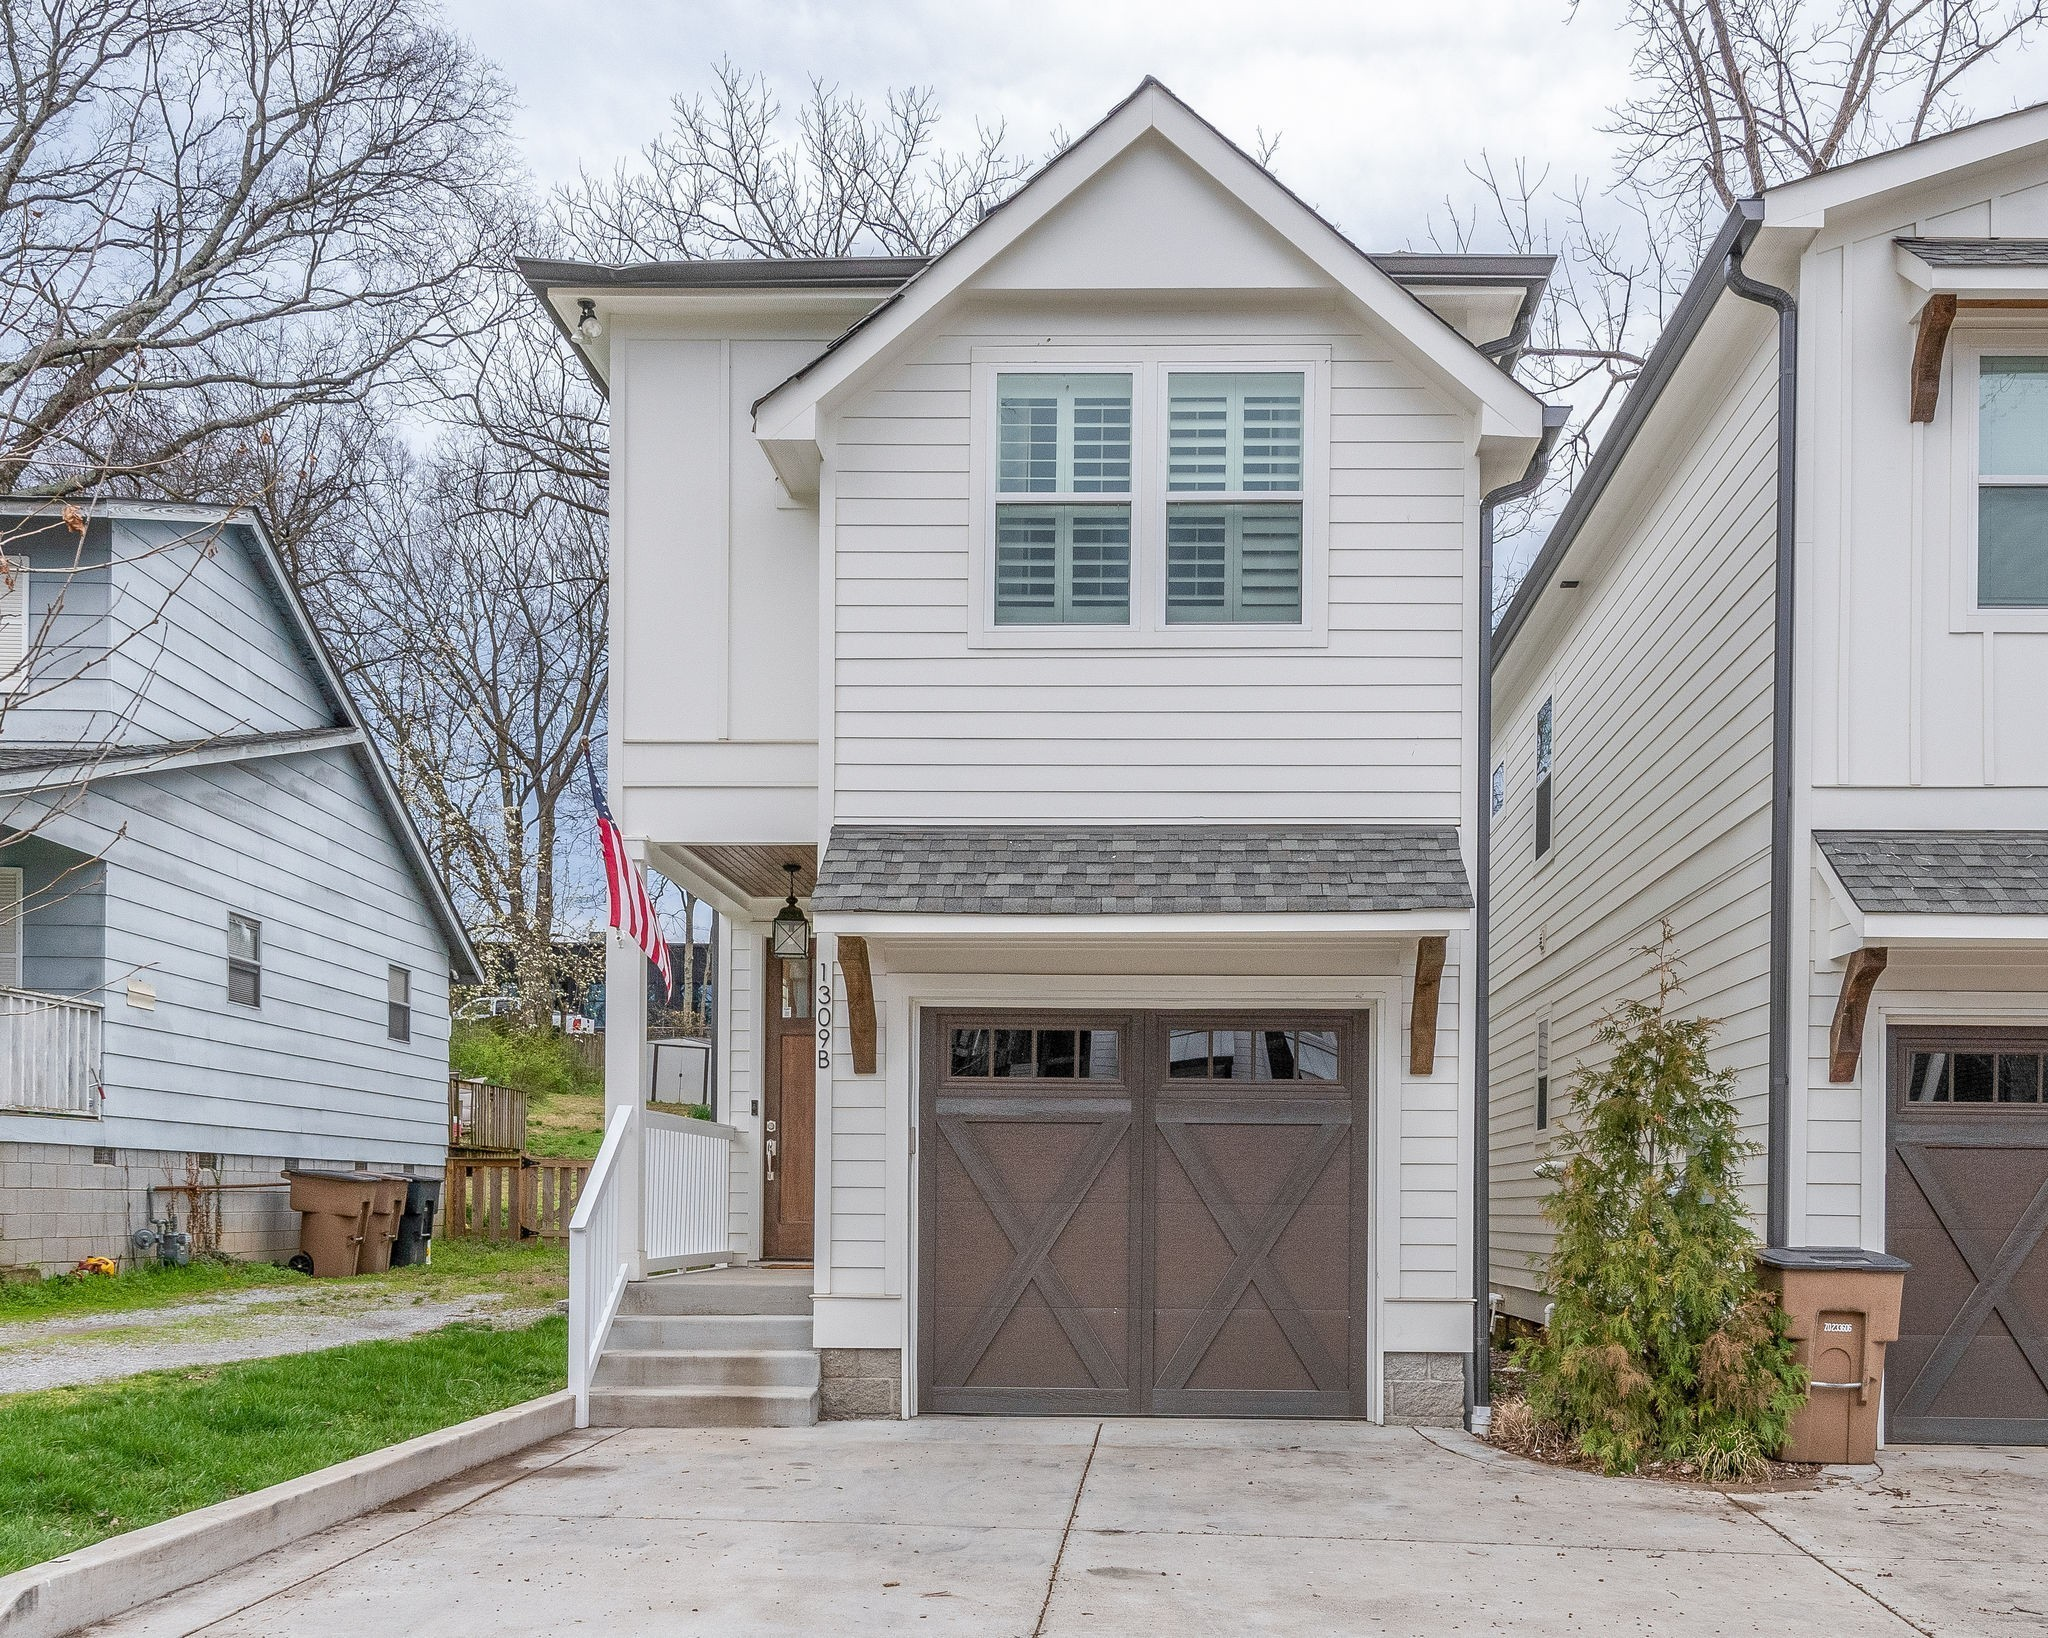 1309B Pillow Street, Nashville - Midtown in Davidson County, TN County, TN 37203 Home for Sale